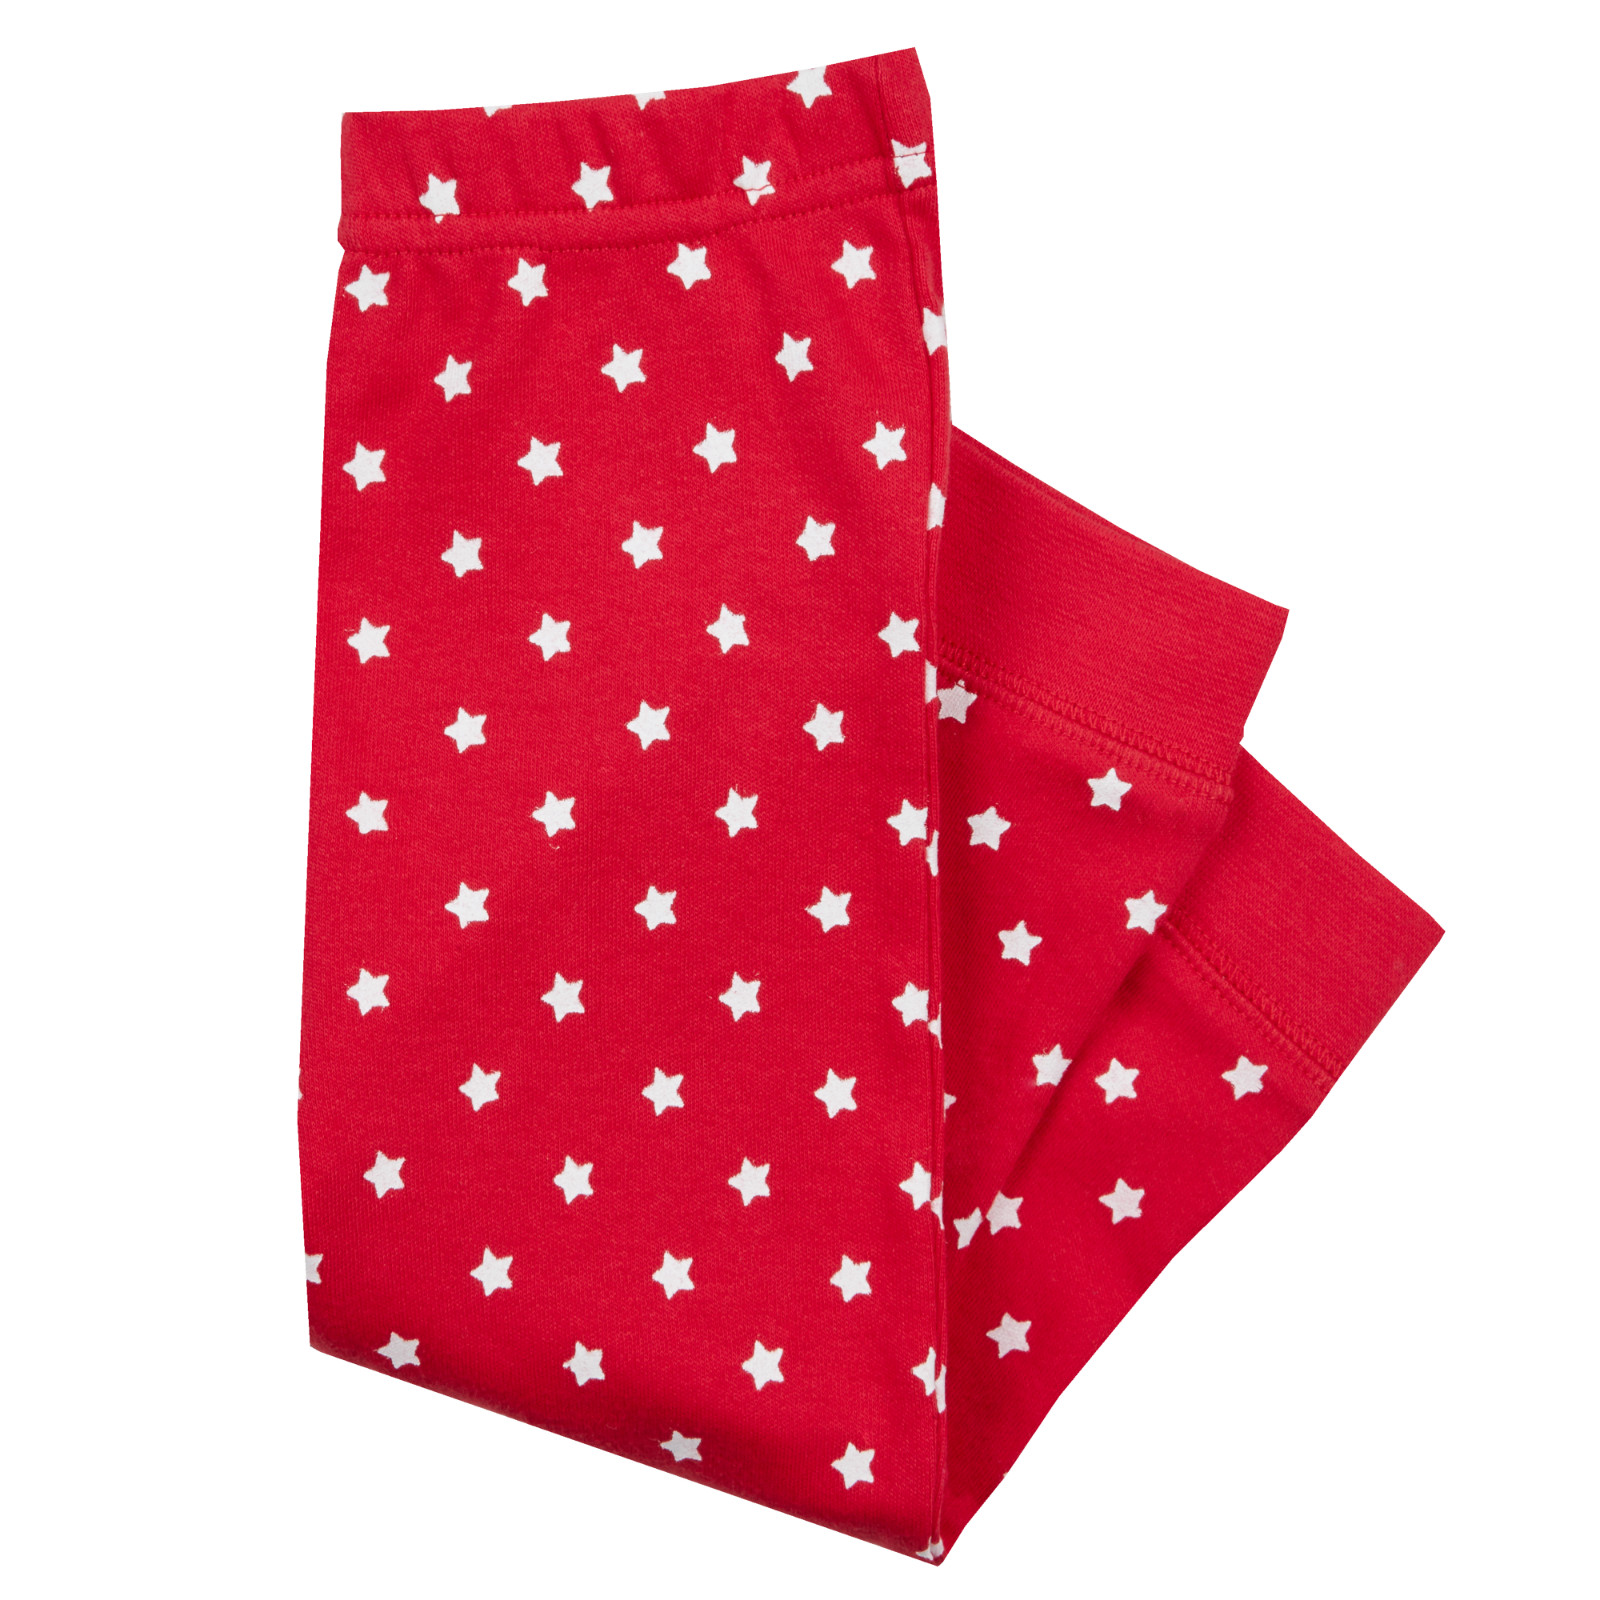 Details about Baby Boys Girls Christmas Pyjamas Cute Novelty Xmas Pjs  Babies Festive Outfit a098f3a63